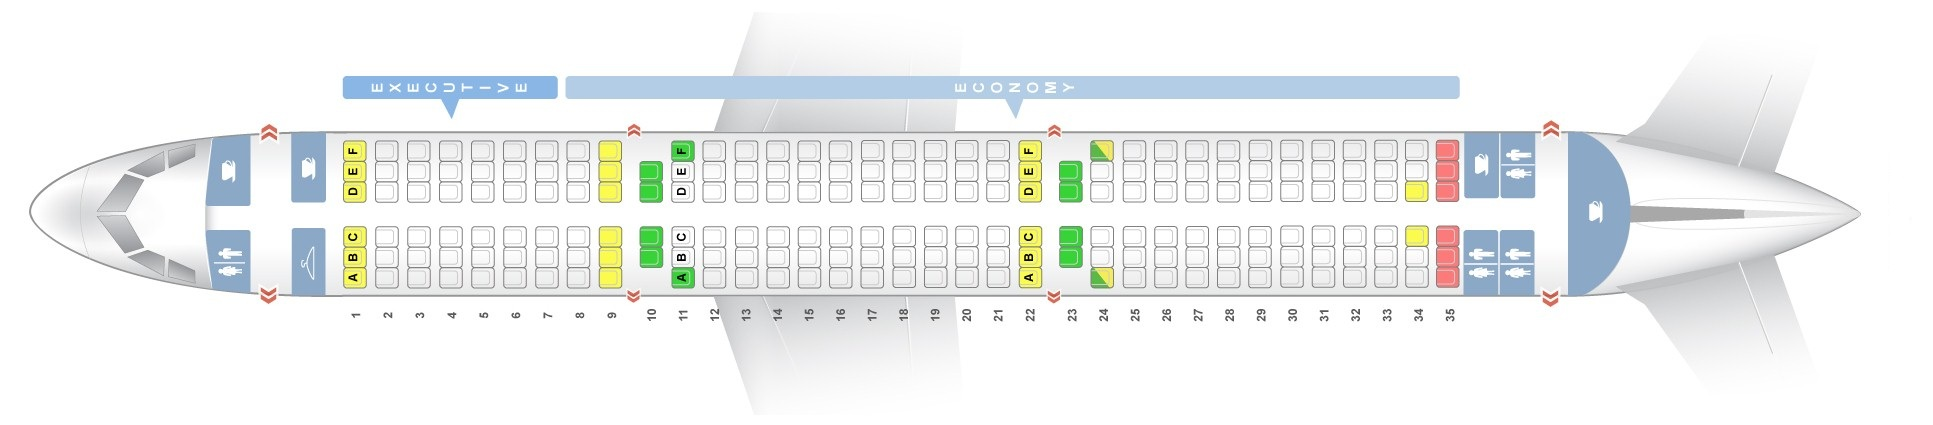 Seat map Airbus A321-200 TAP Portugal. Best seats in the plane